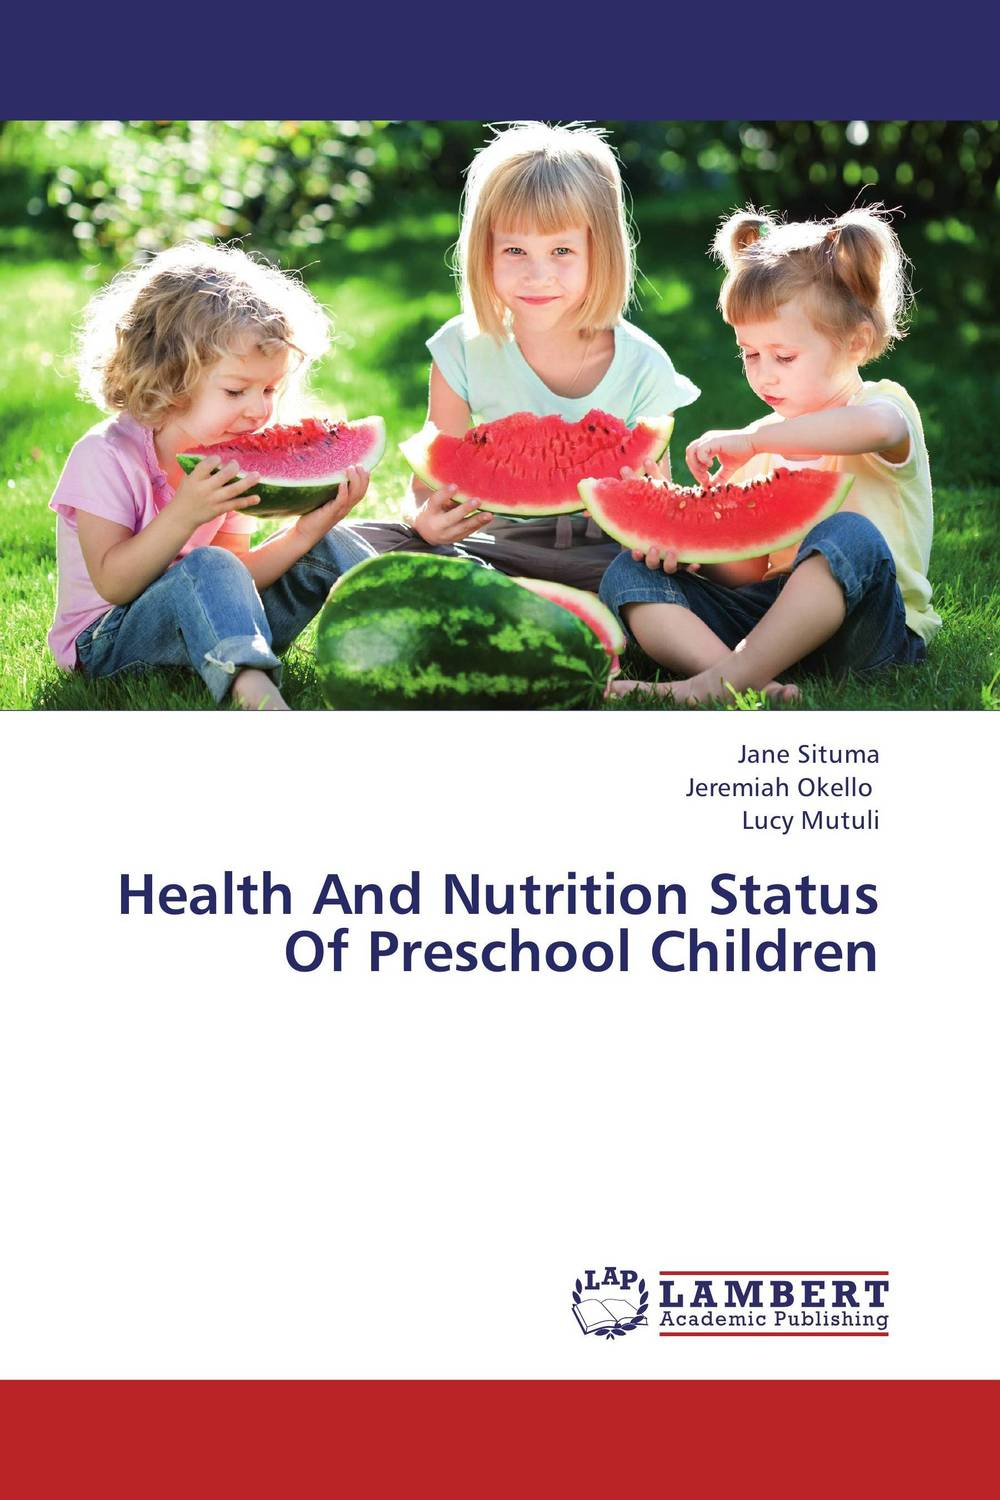 Health And Nutrition Status Of Preschool Children assessment of hiv status disclosure among plwha in tano north district